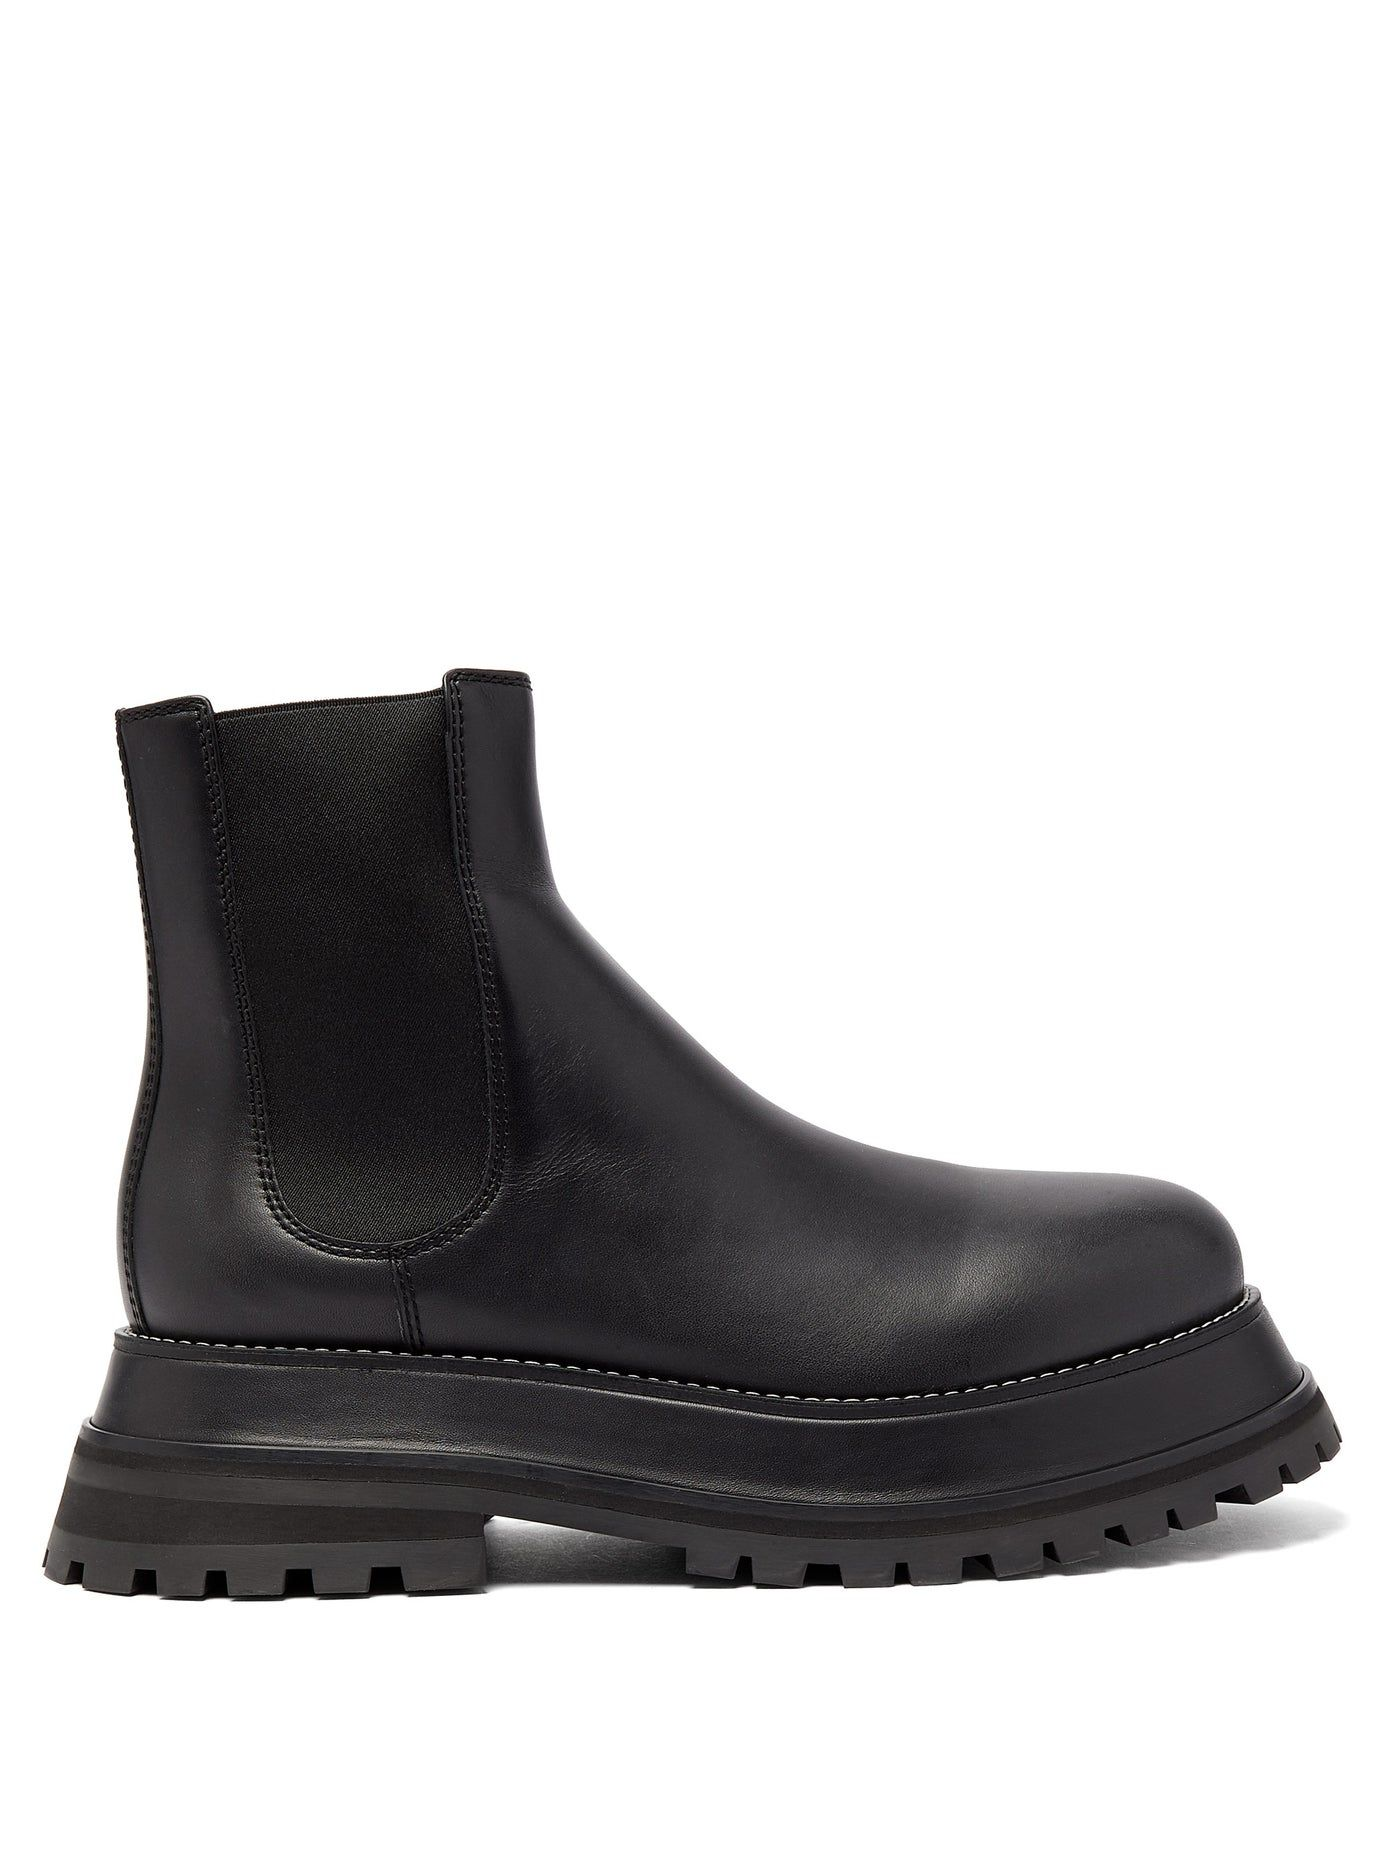 Burberry-Chunky-platform-leather-chelsea-boots